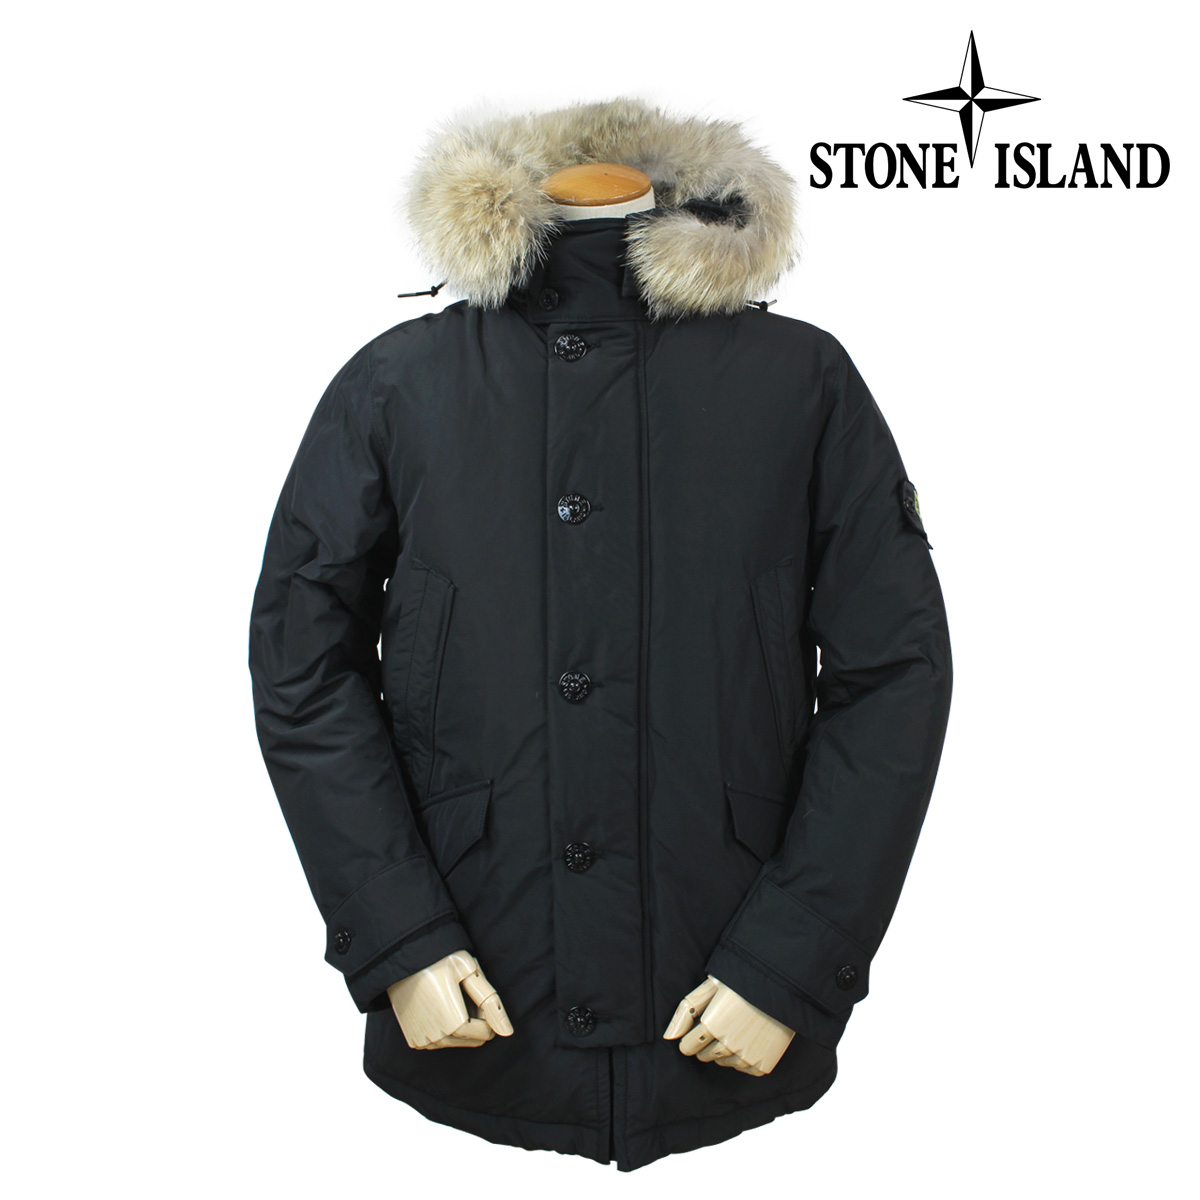 Mens down jacket with hood - Stone Island Stone Island Men S Down Jacket Down Coat Call Grey Micro Reps Down 12